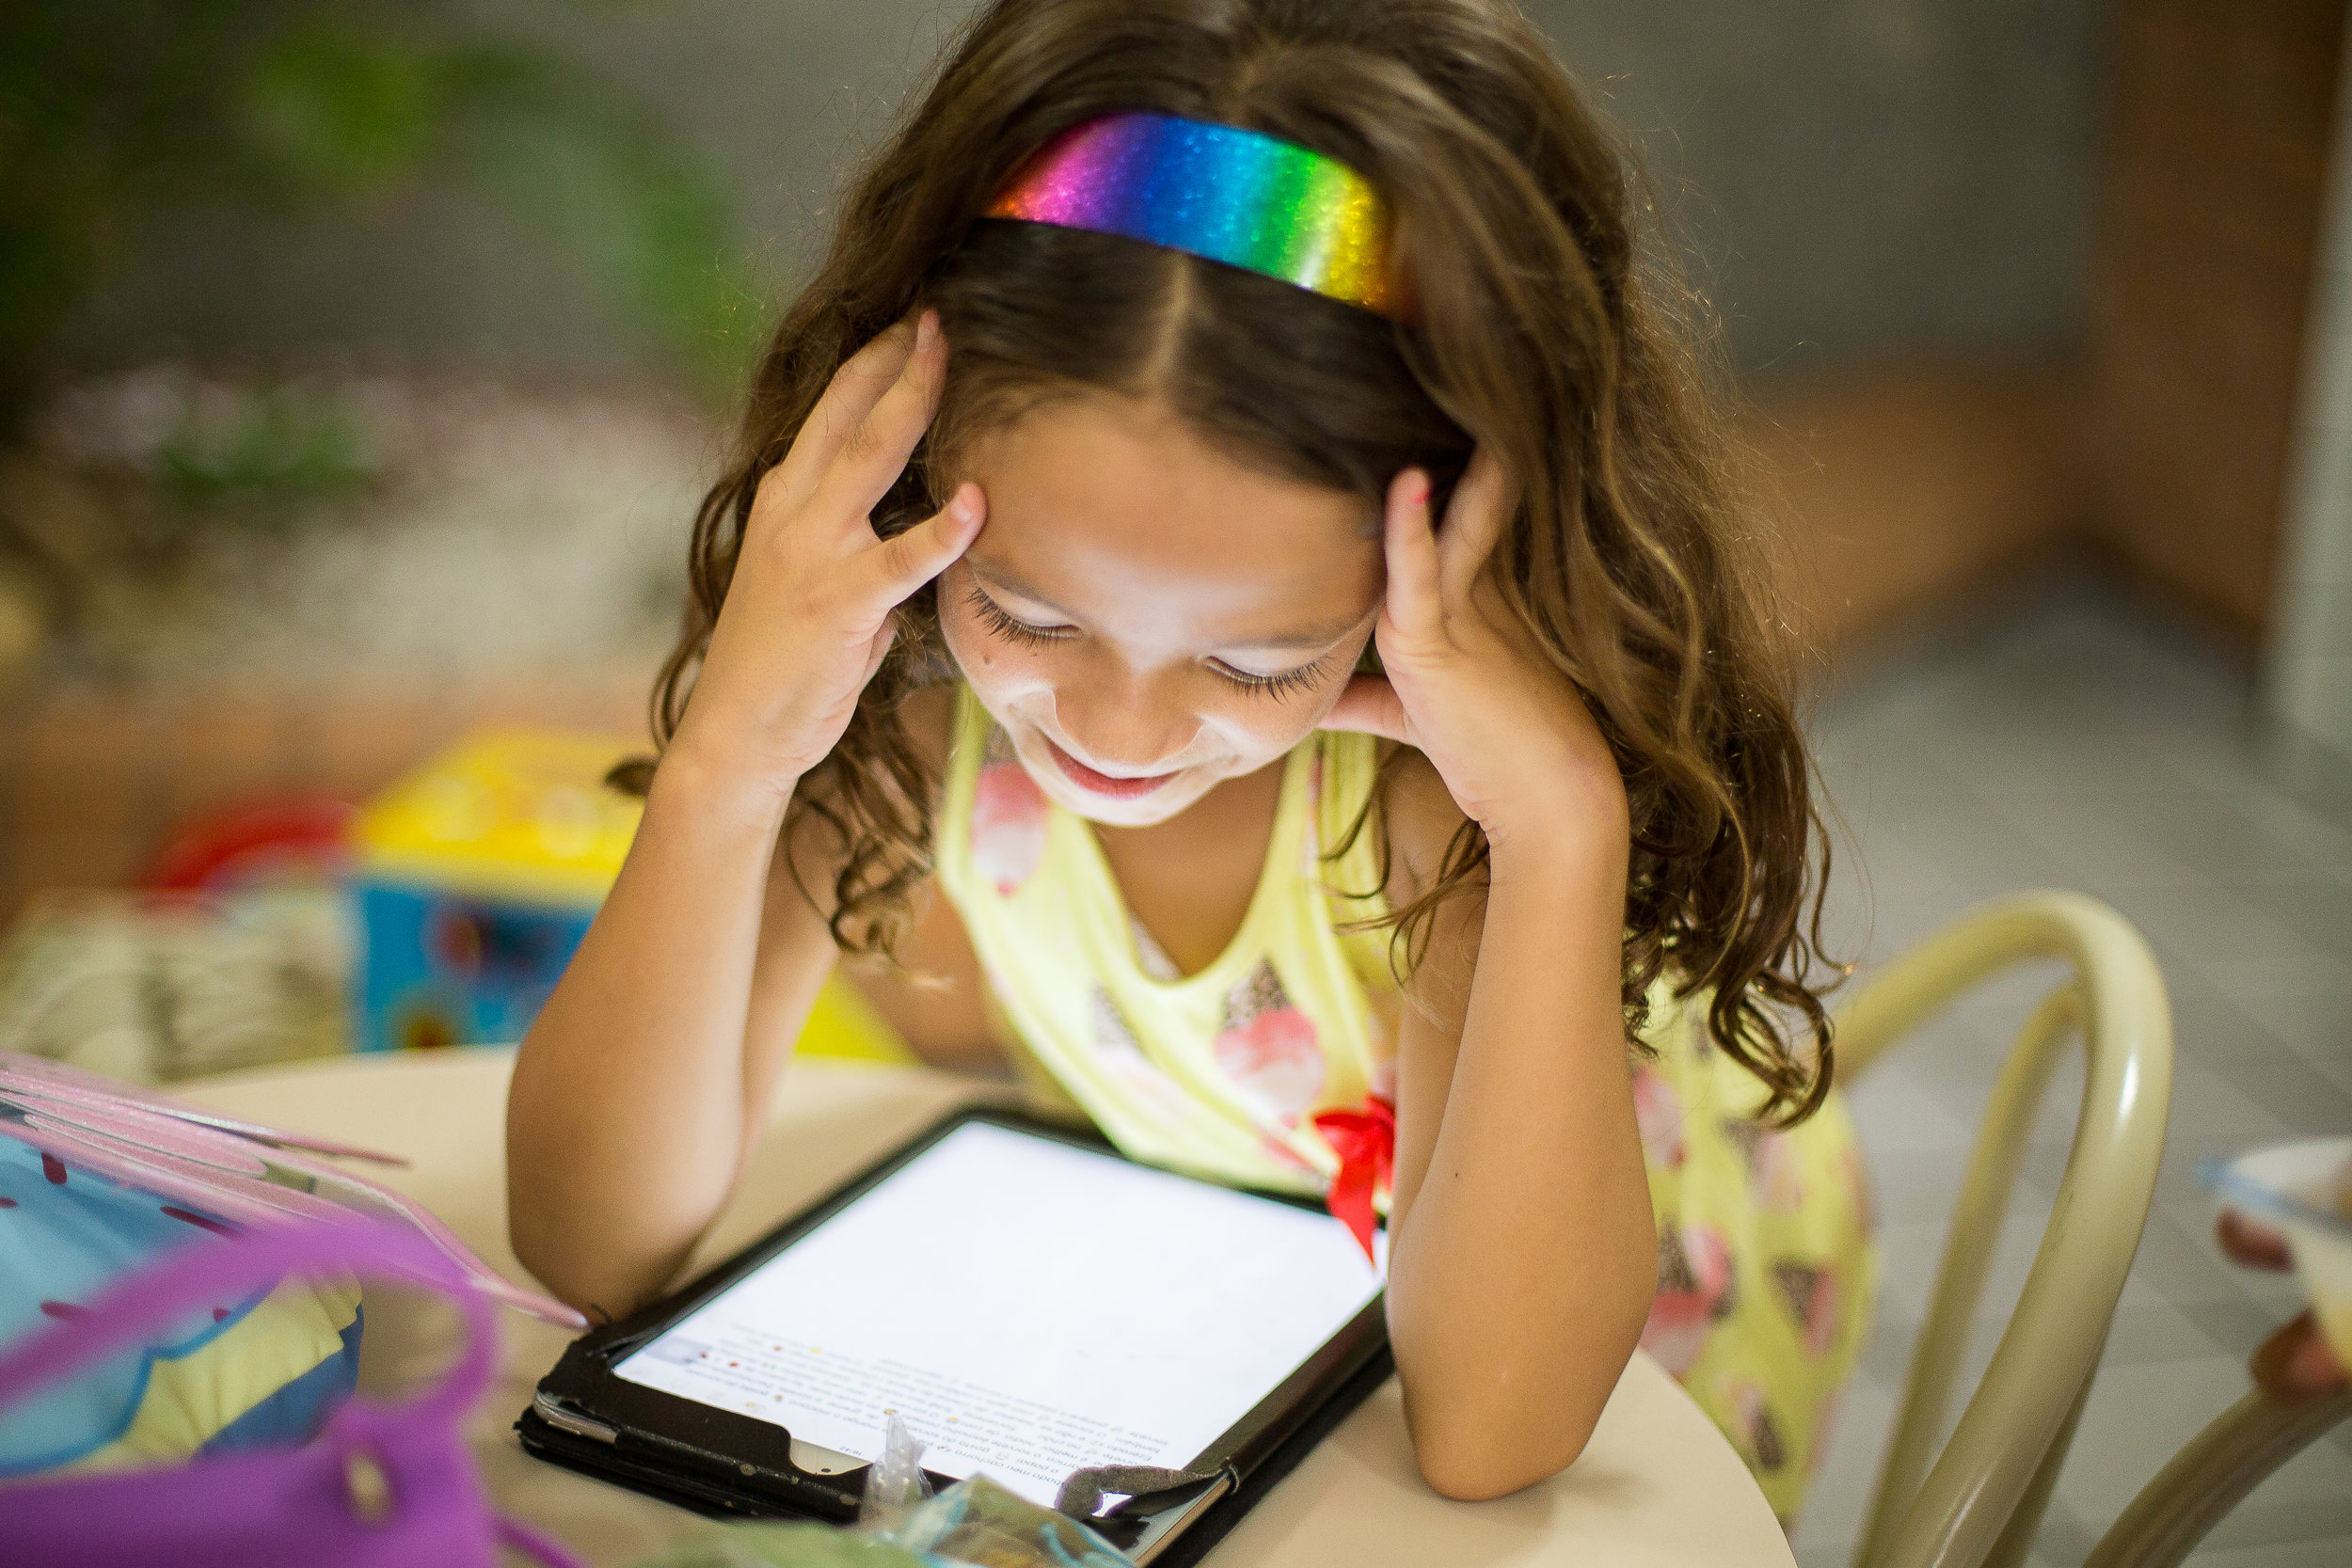 iPad and iPhone apps are a great and fun way to work on speech-language skills.